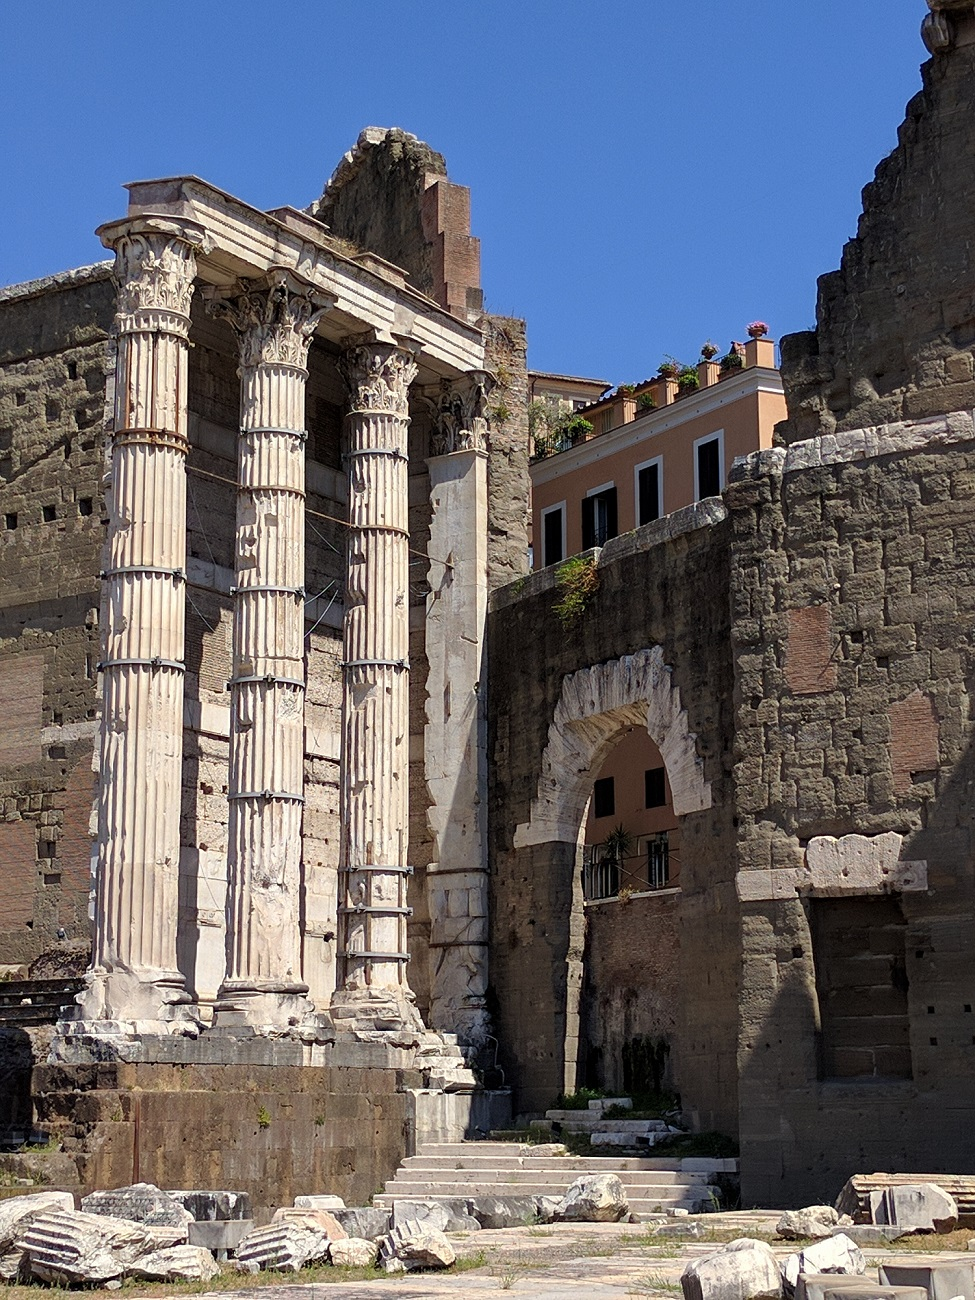 The three remaining columns of the Temple of Mars